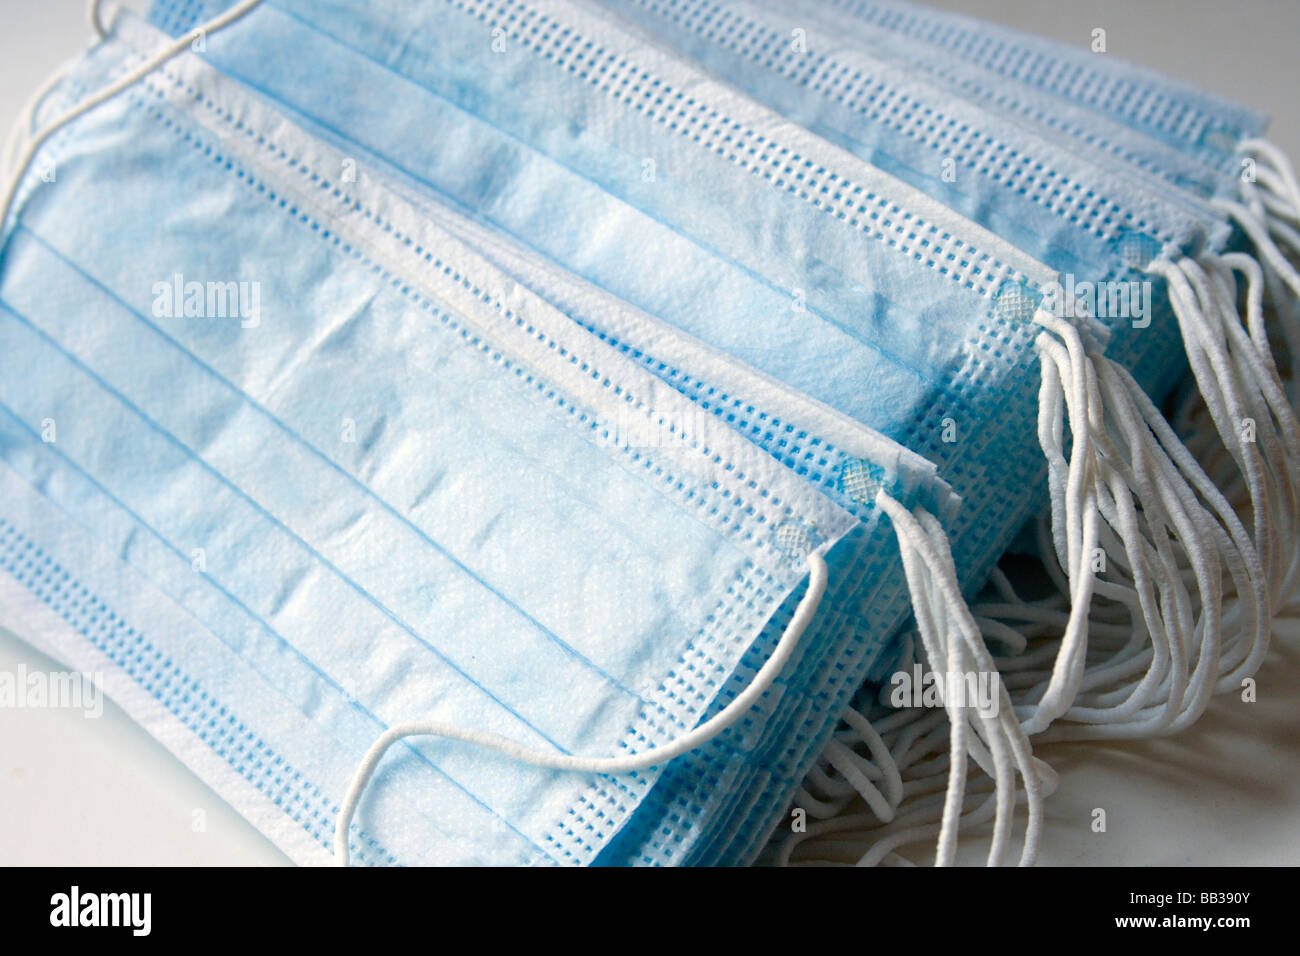 Bunch of blue surgical protection masks. - Stock Image